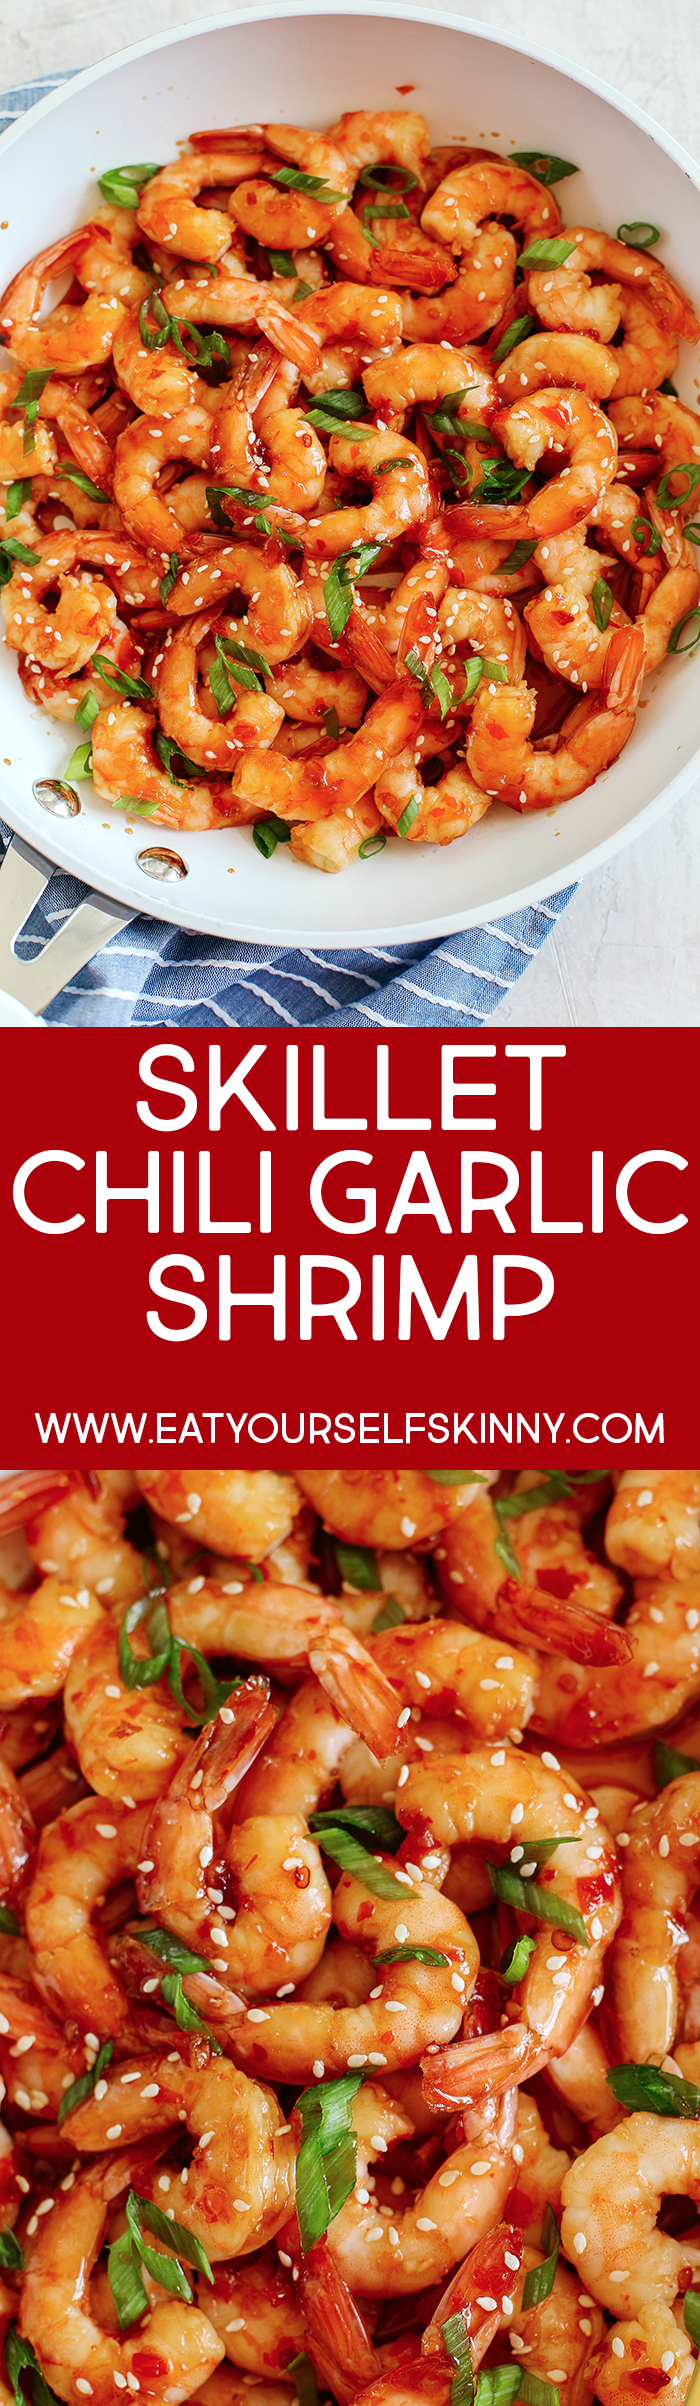 Sweet and flavorful Skillet Chili Garlic and Lime Shrimp that tastes amazing and is ready in just minutes!  Perfect as an appetizer, on top of a salad or even as a main dish!